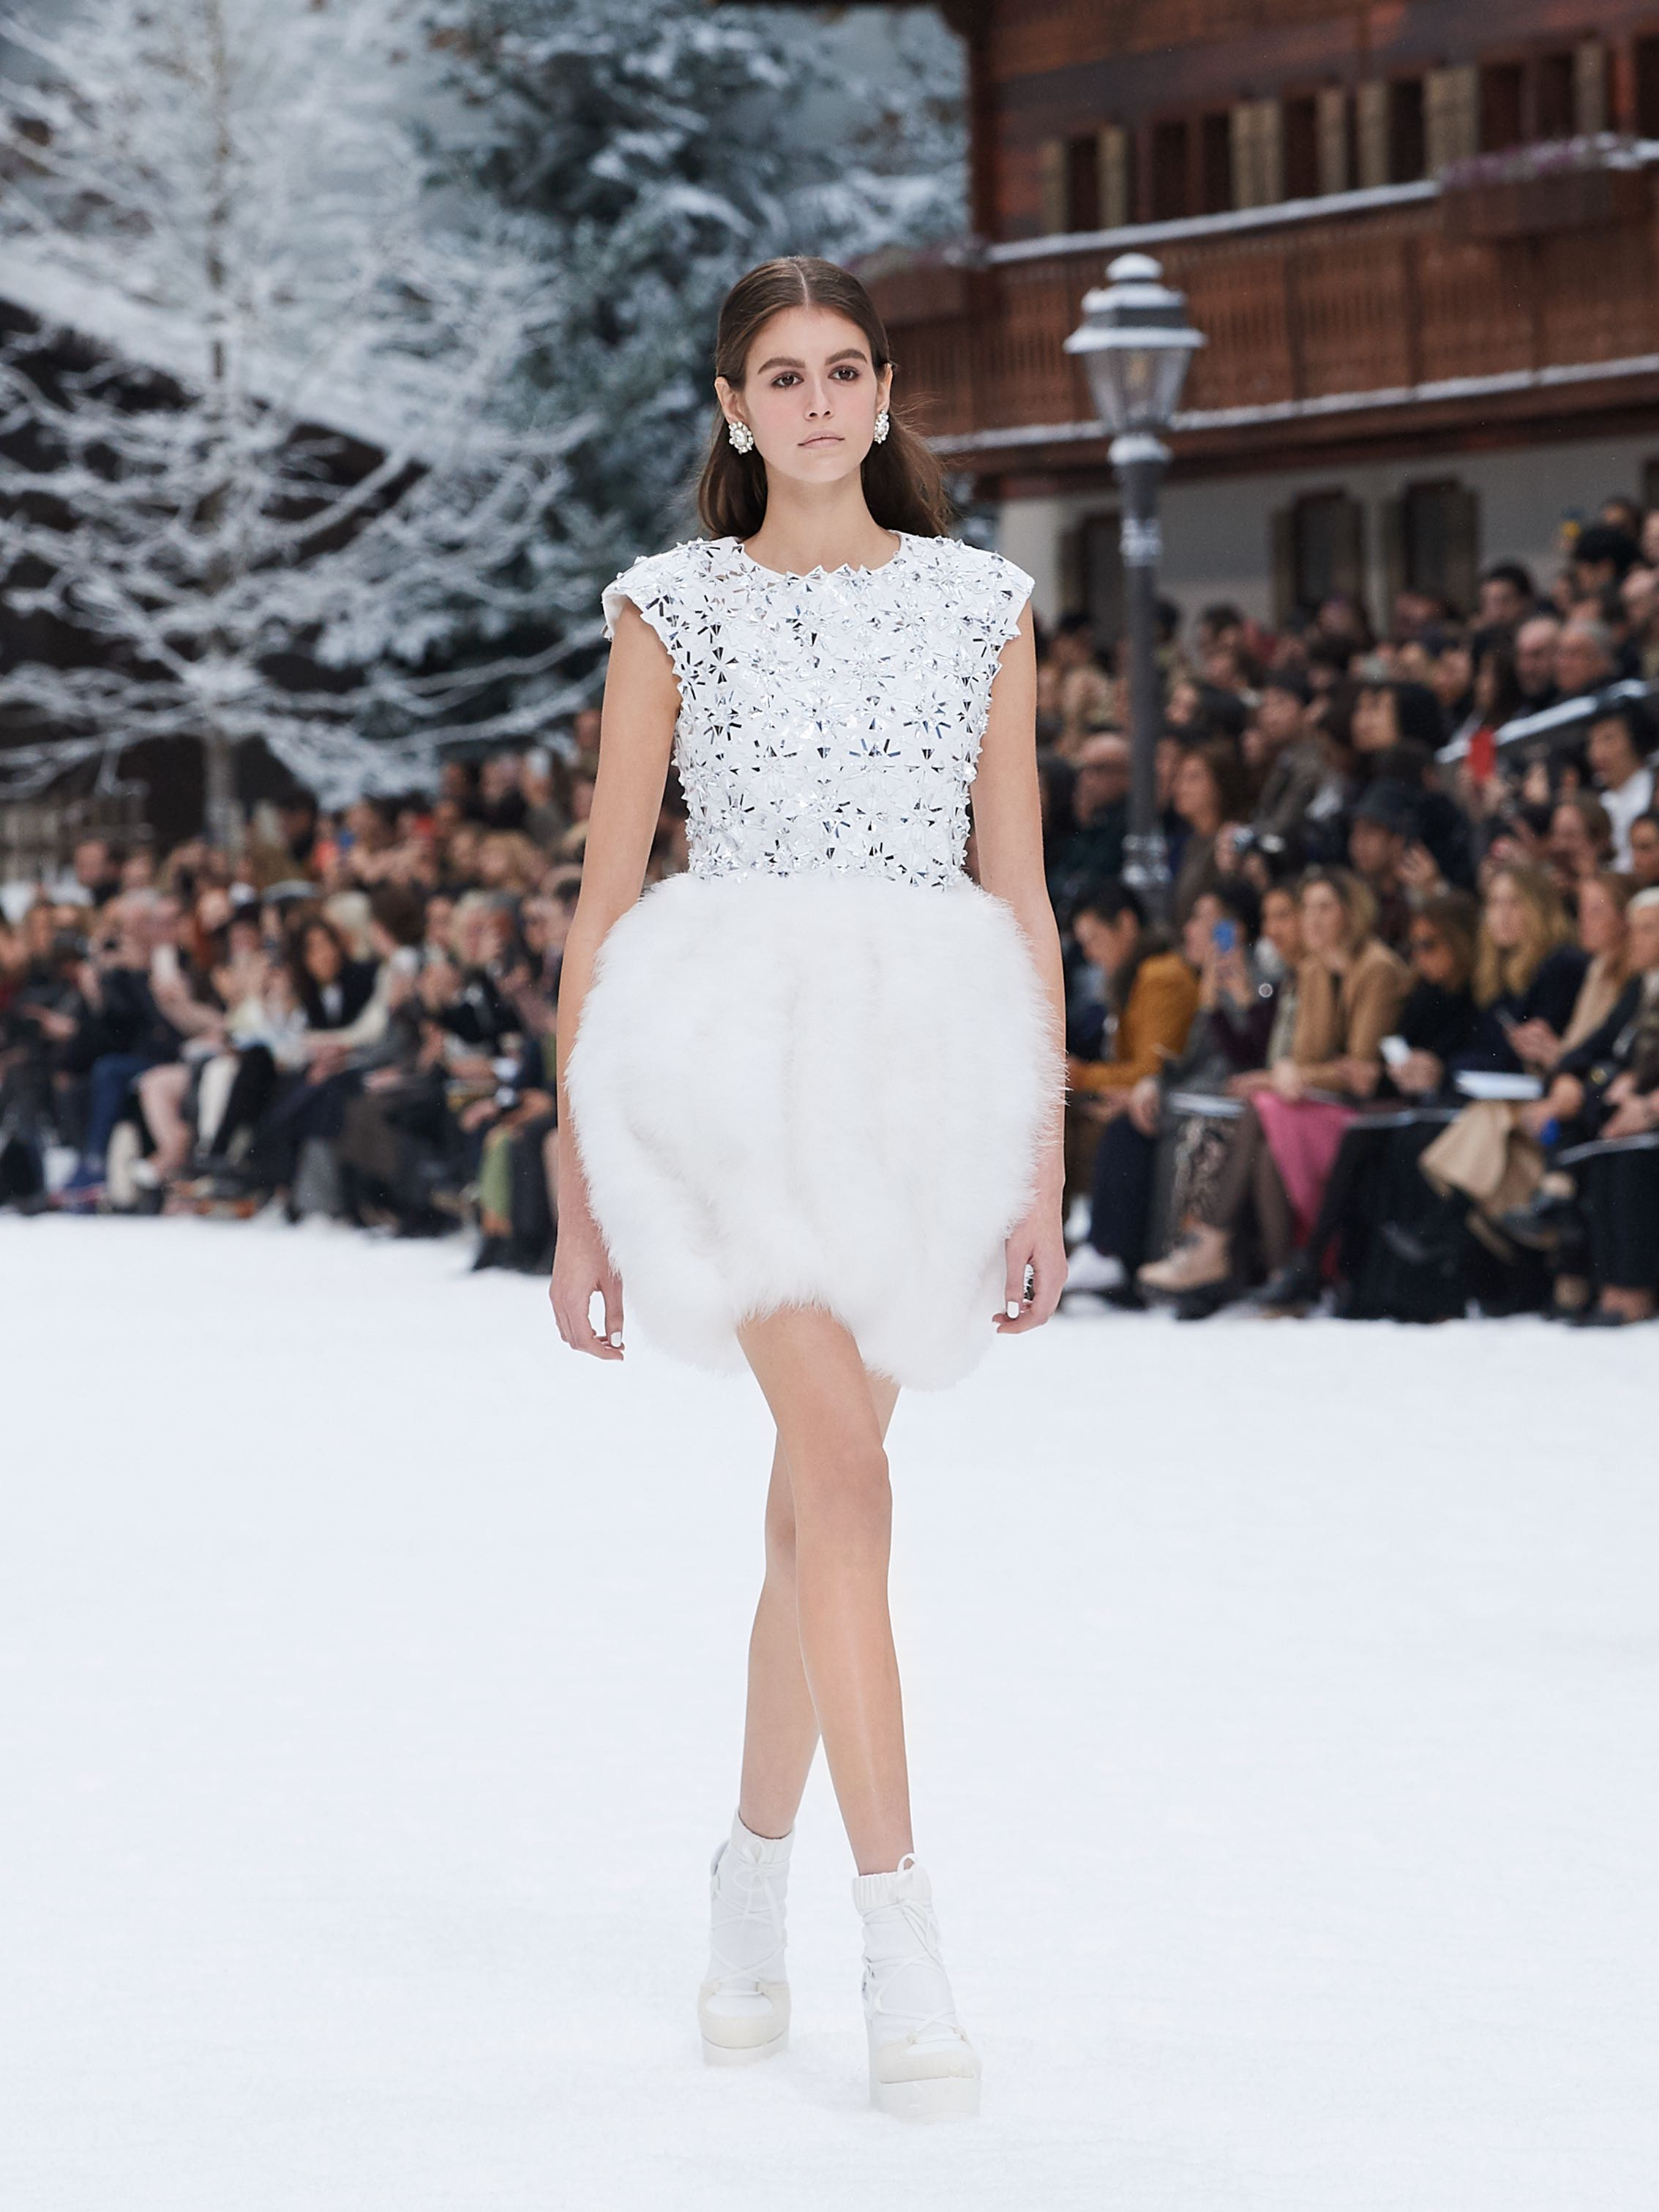 Chanel AW19 Paris Fashion Week Kaia Gerber